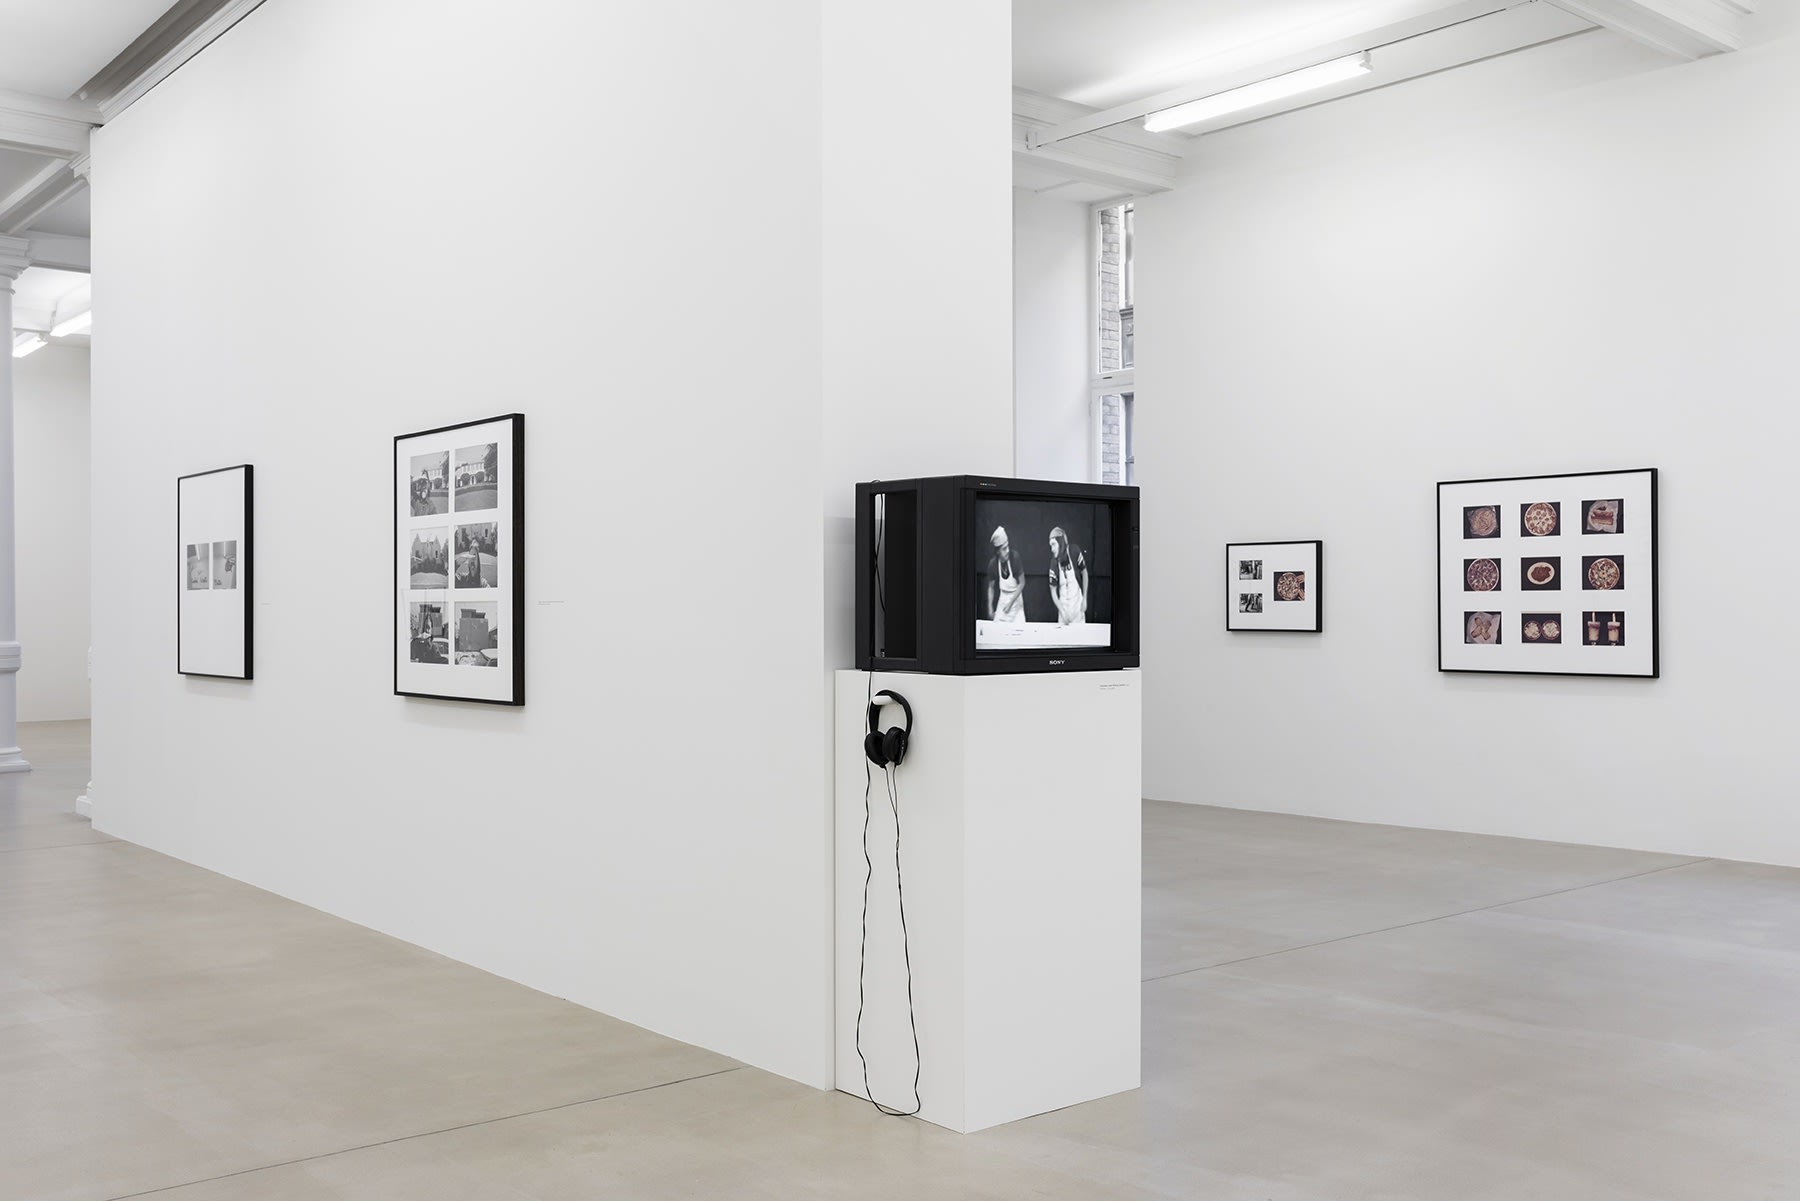 A cathode-ray tube tv displaying content stands on a pedestal, surrounded by several black and white photographs on walls.